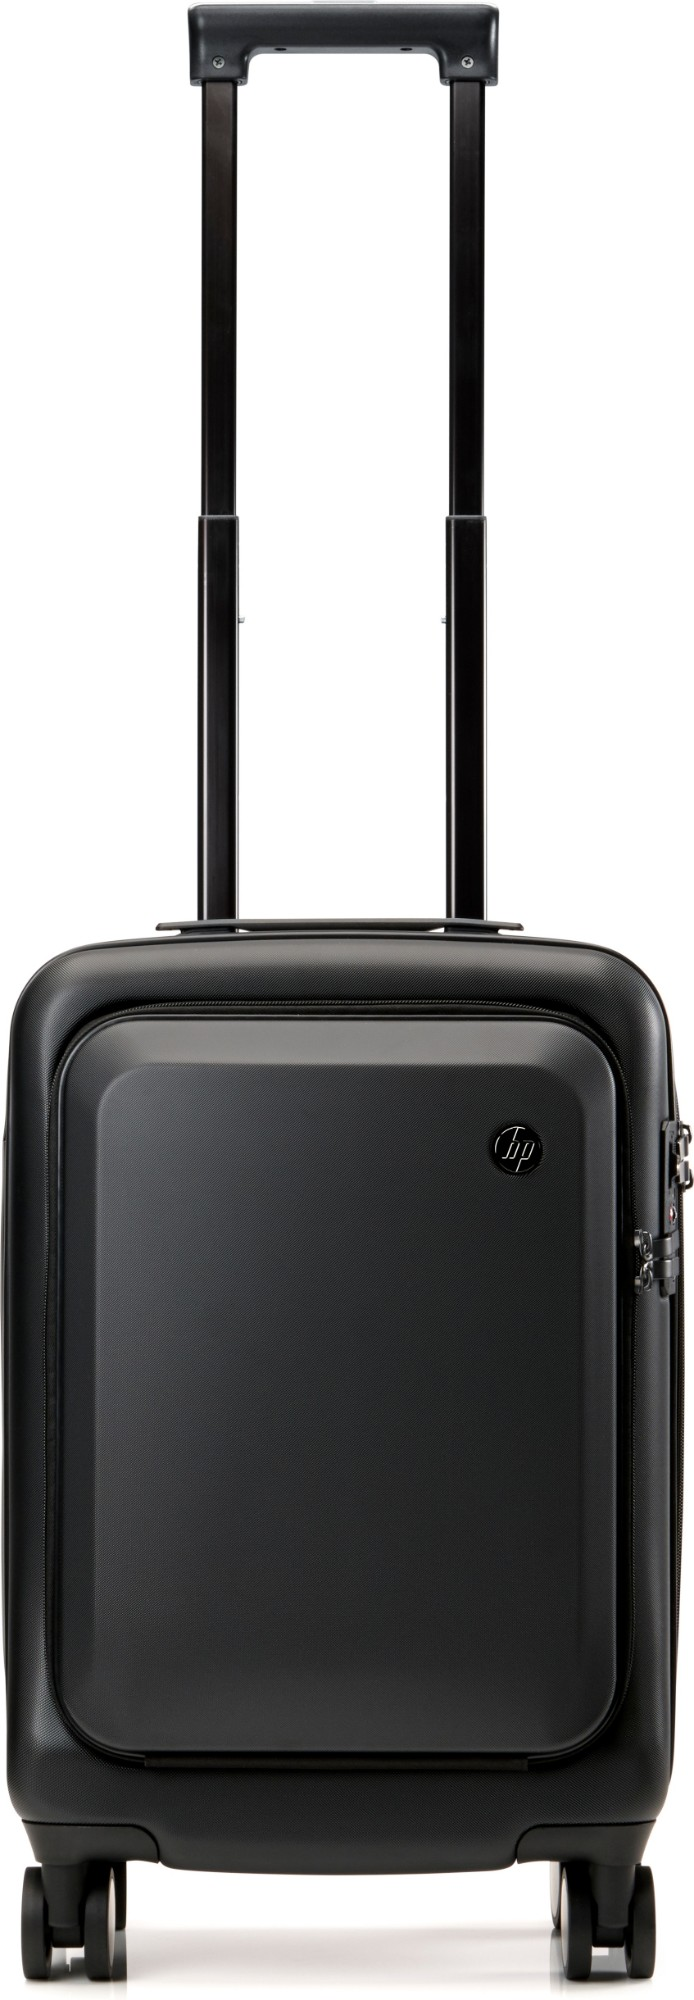 HP All in One Carry On Luggage Trolley Black Acrylonitrile butadiene styrene ABS,Polycarbonate